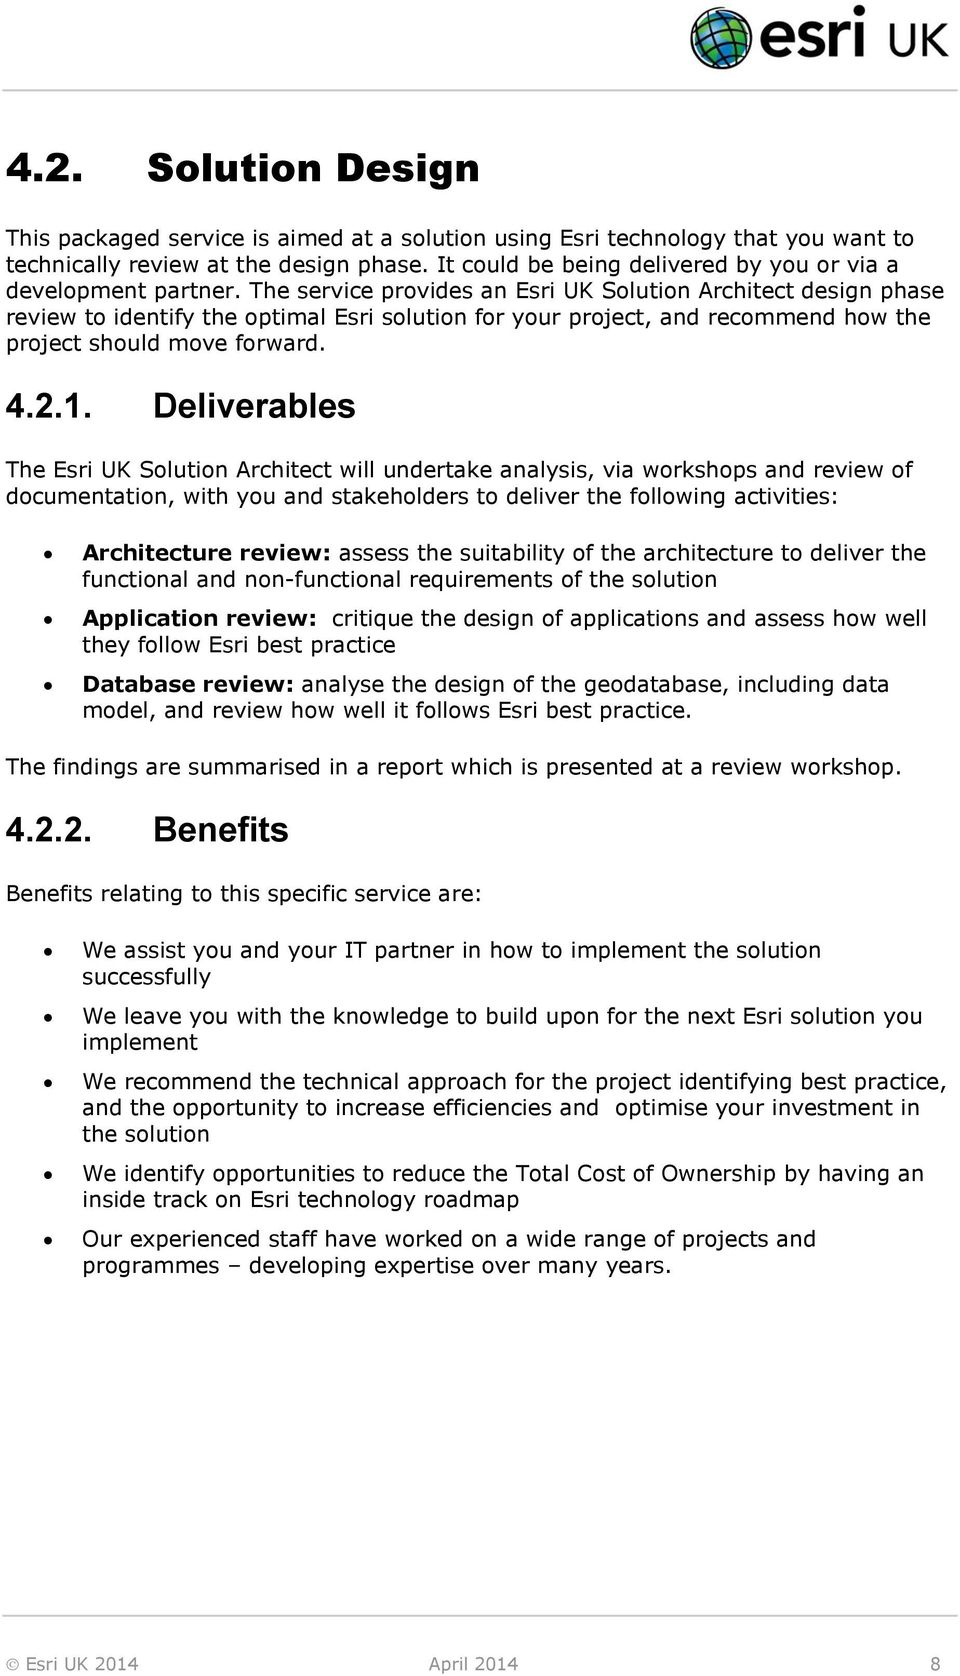 The service provides an Esri UK Solution Architect design phase review to identify the optimal Esri solution for your project, and recommend how the project should move forward. 4.2.1.